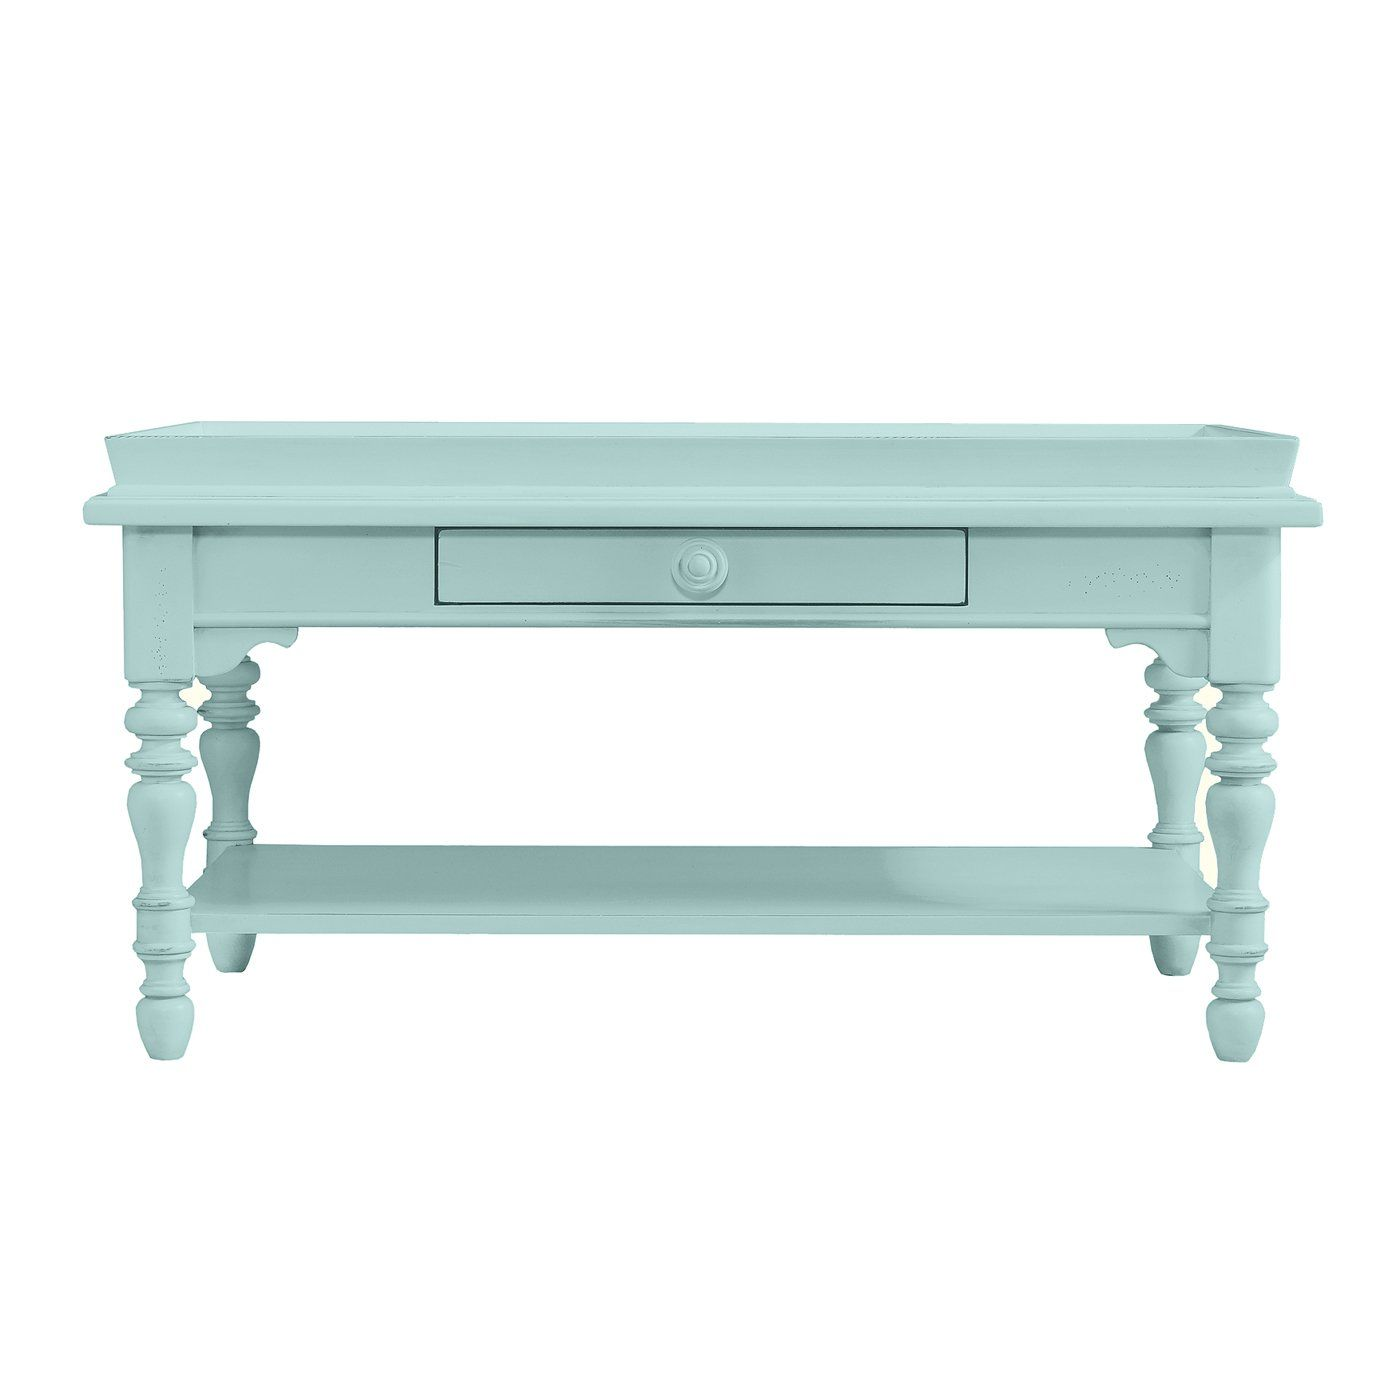 Stanley Furniture 829 Coastal Living Sand Box Cocktail Table